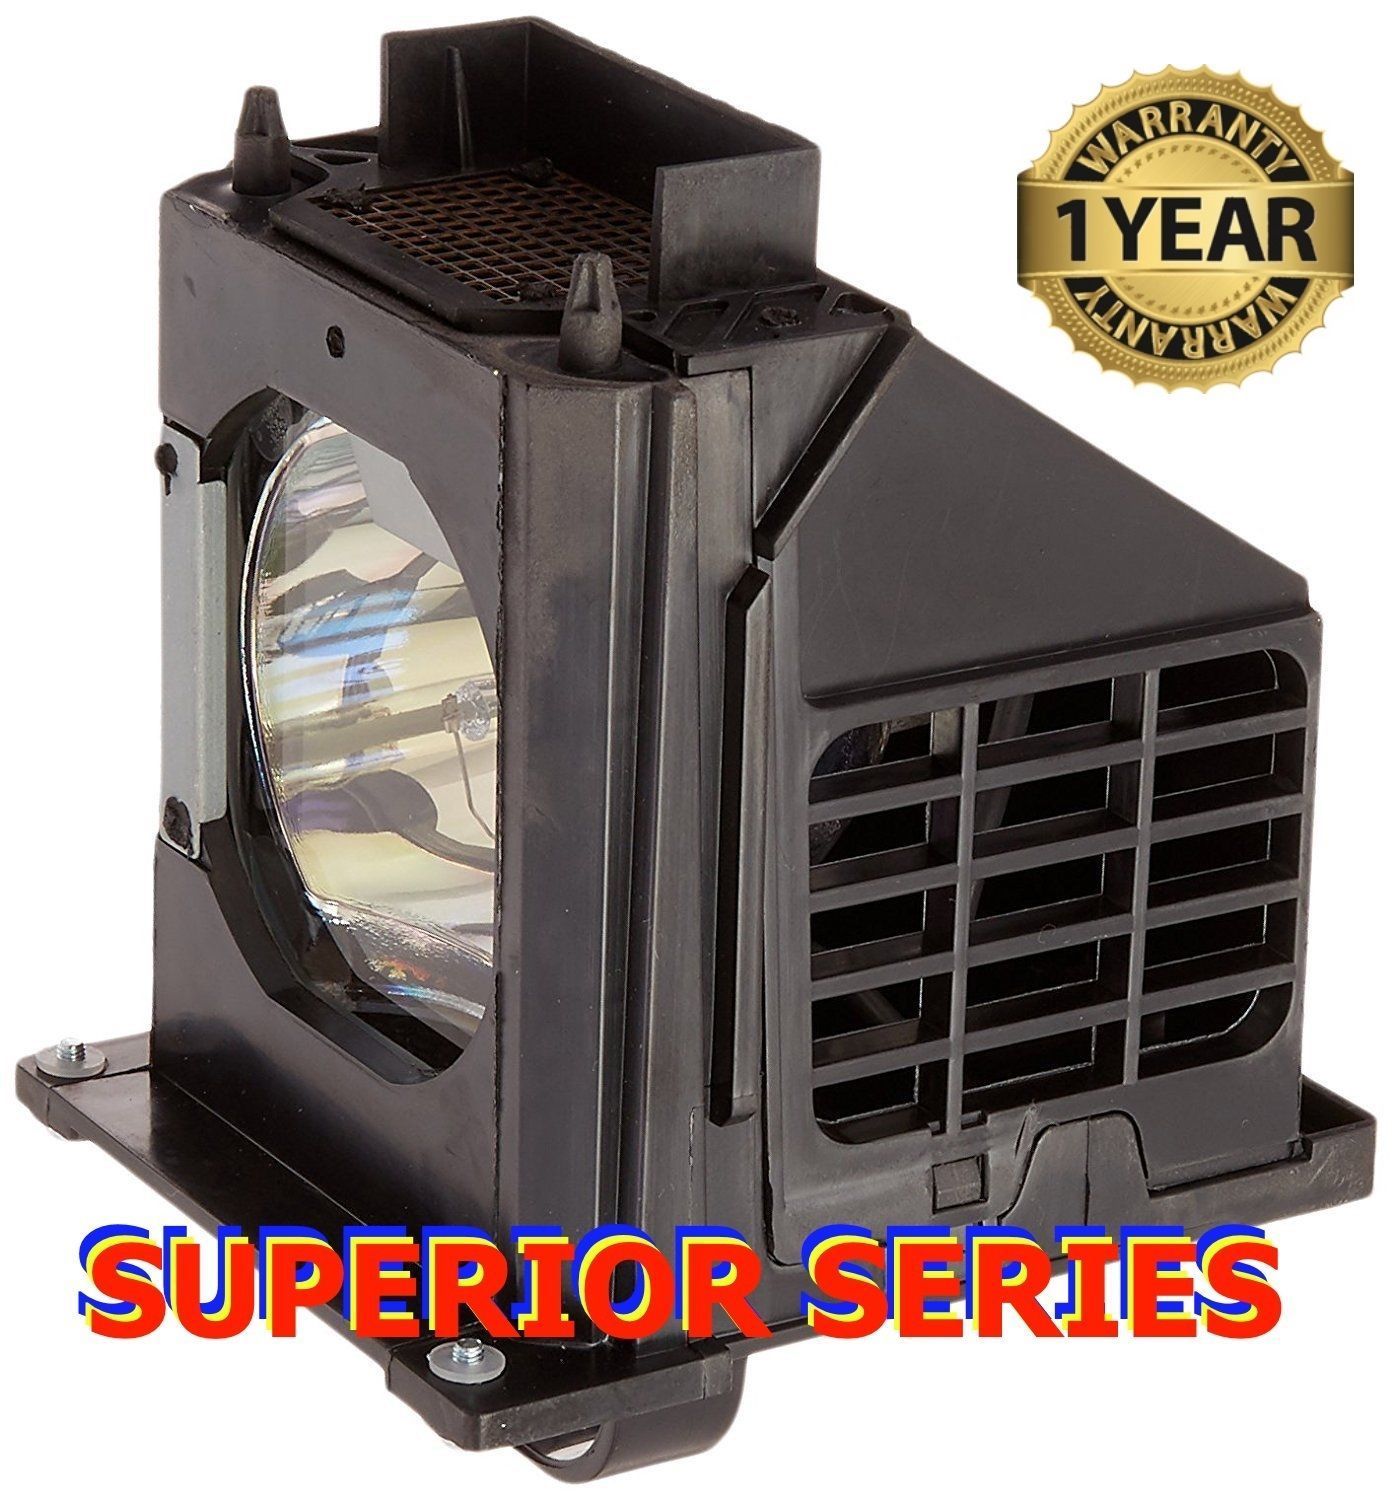 JVC TS-CL110UAA TSCL110UAA SUPERIOR SERIES LAMP-NEW /& IMPROVED FOR HD-56FN97